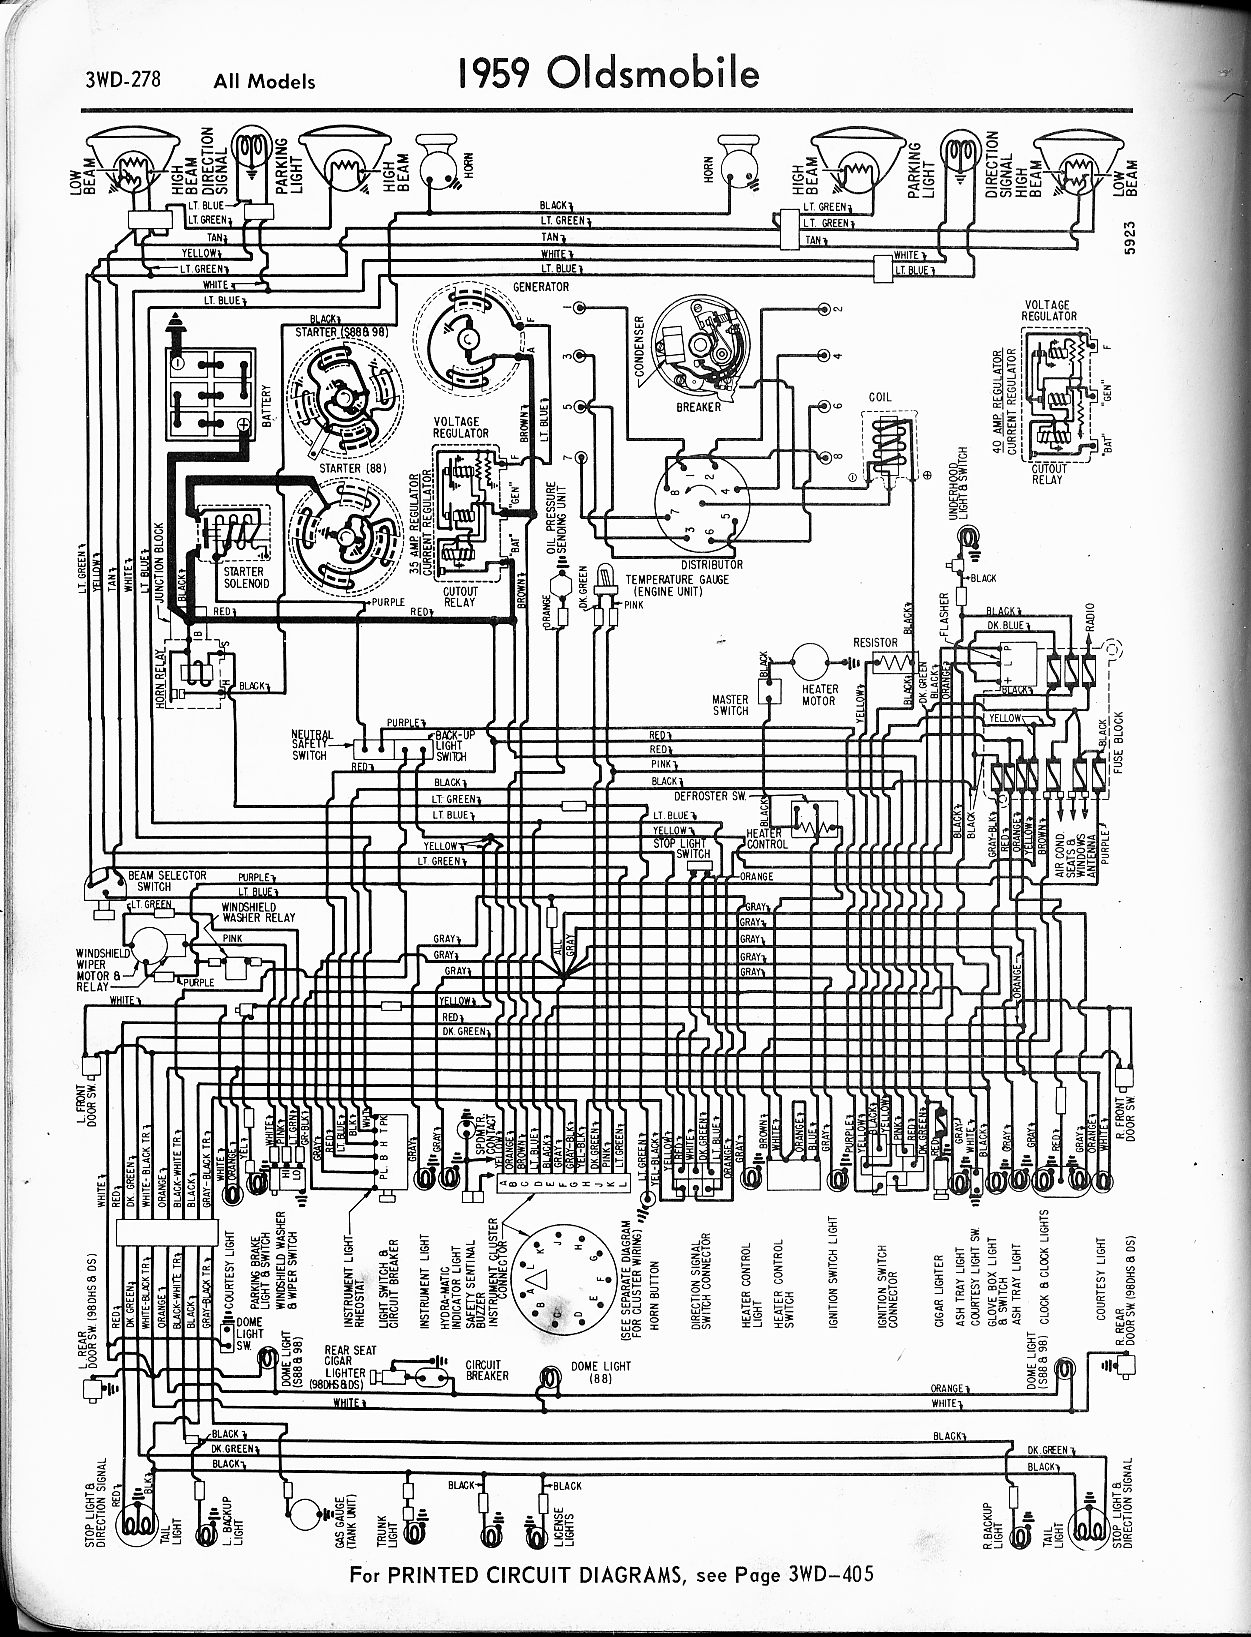 wiring diagram 1988 oldsmobile 88 | wiring library 1987 oldsmobile 98 wiring diagrams